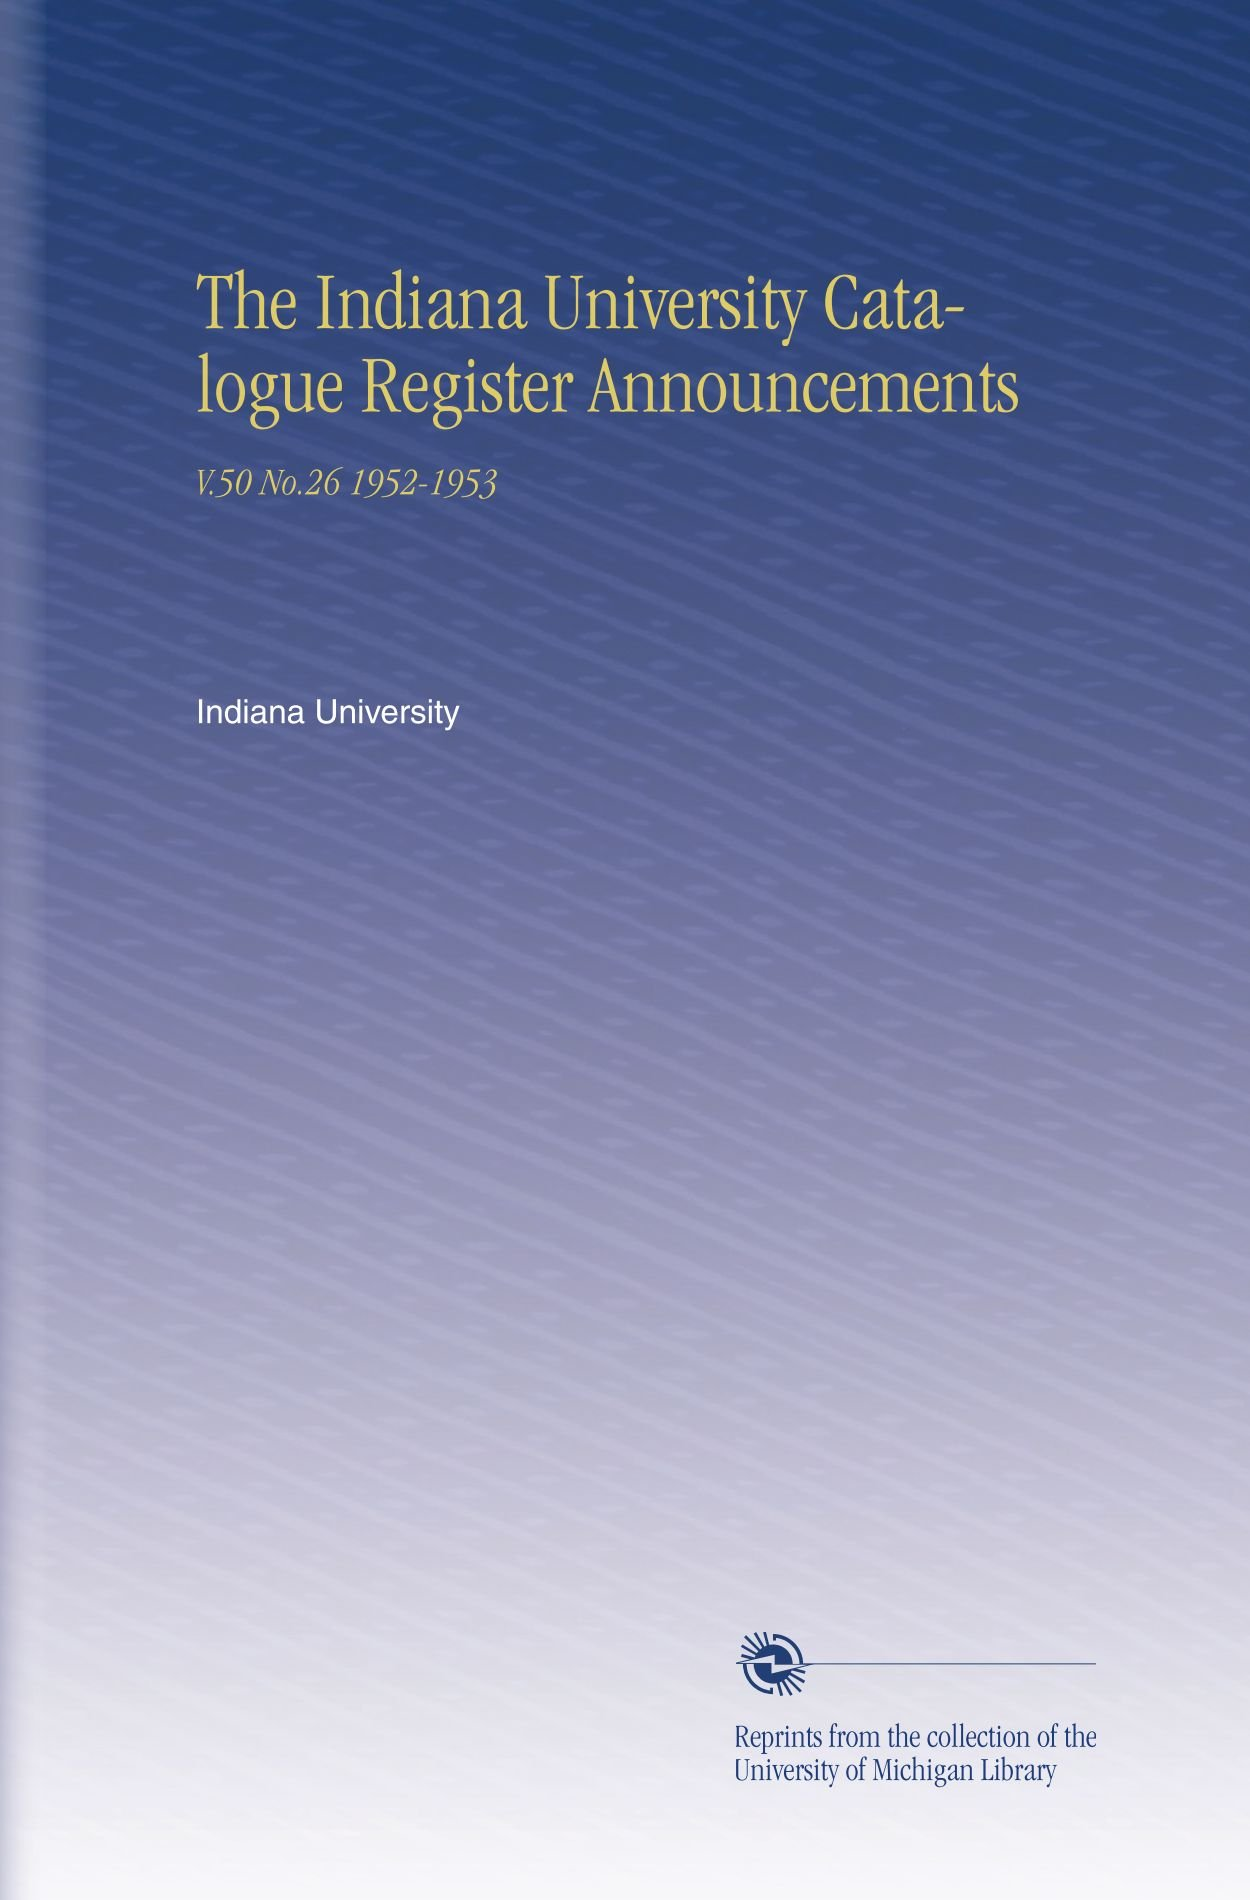 Download The Indiana University Catalogue Register Announcements: V.50 No.26 1952-1953 PDF